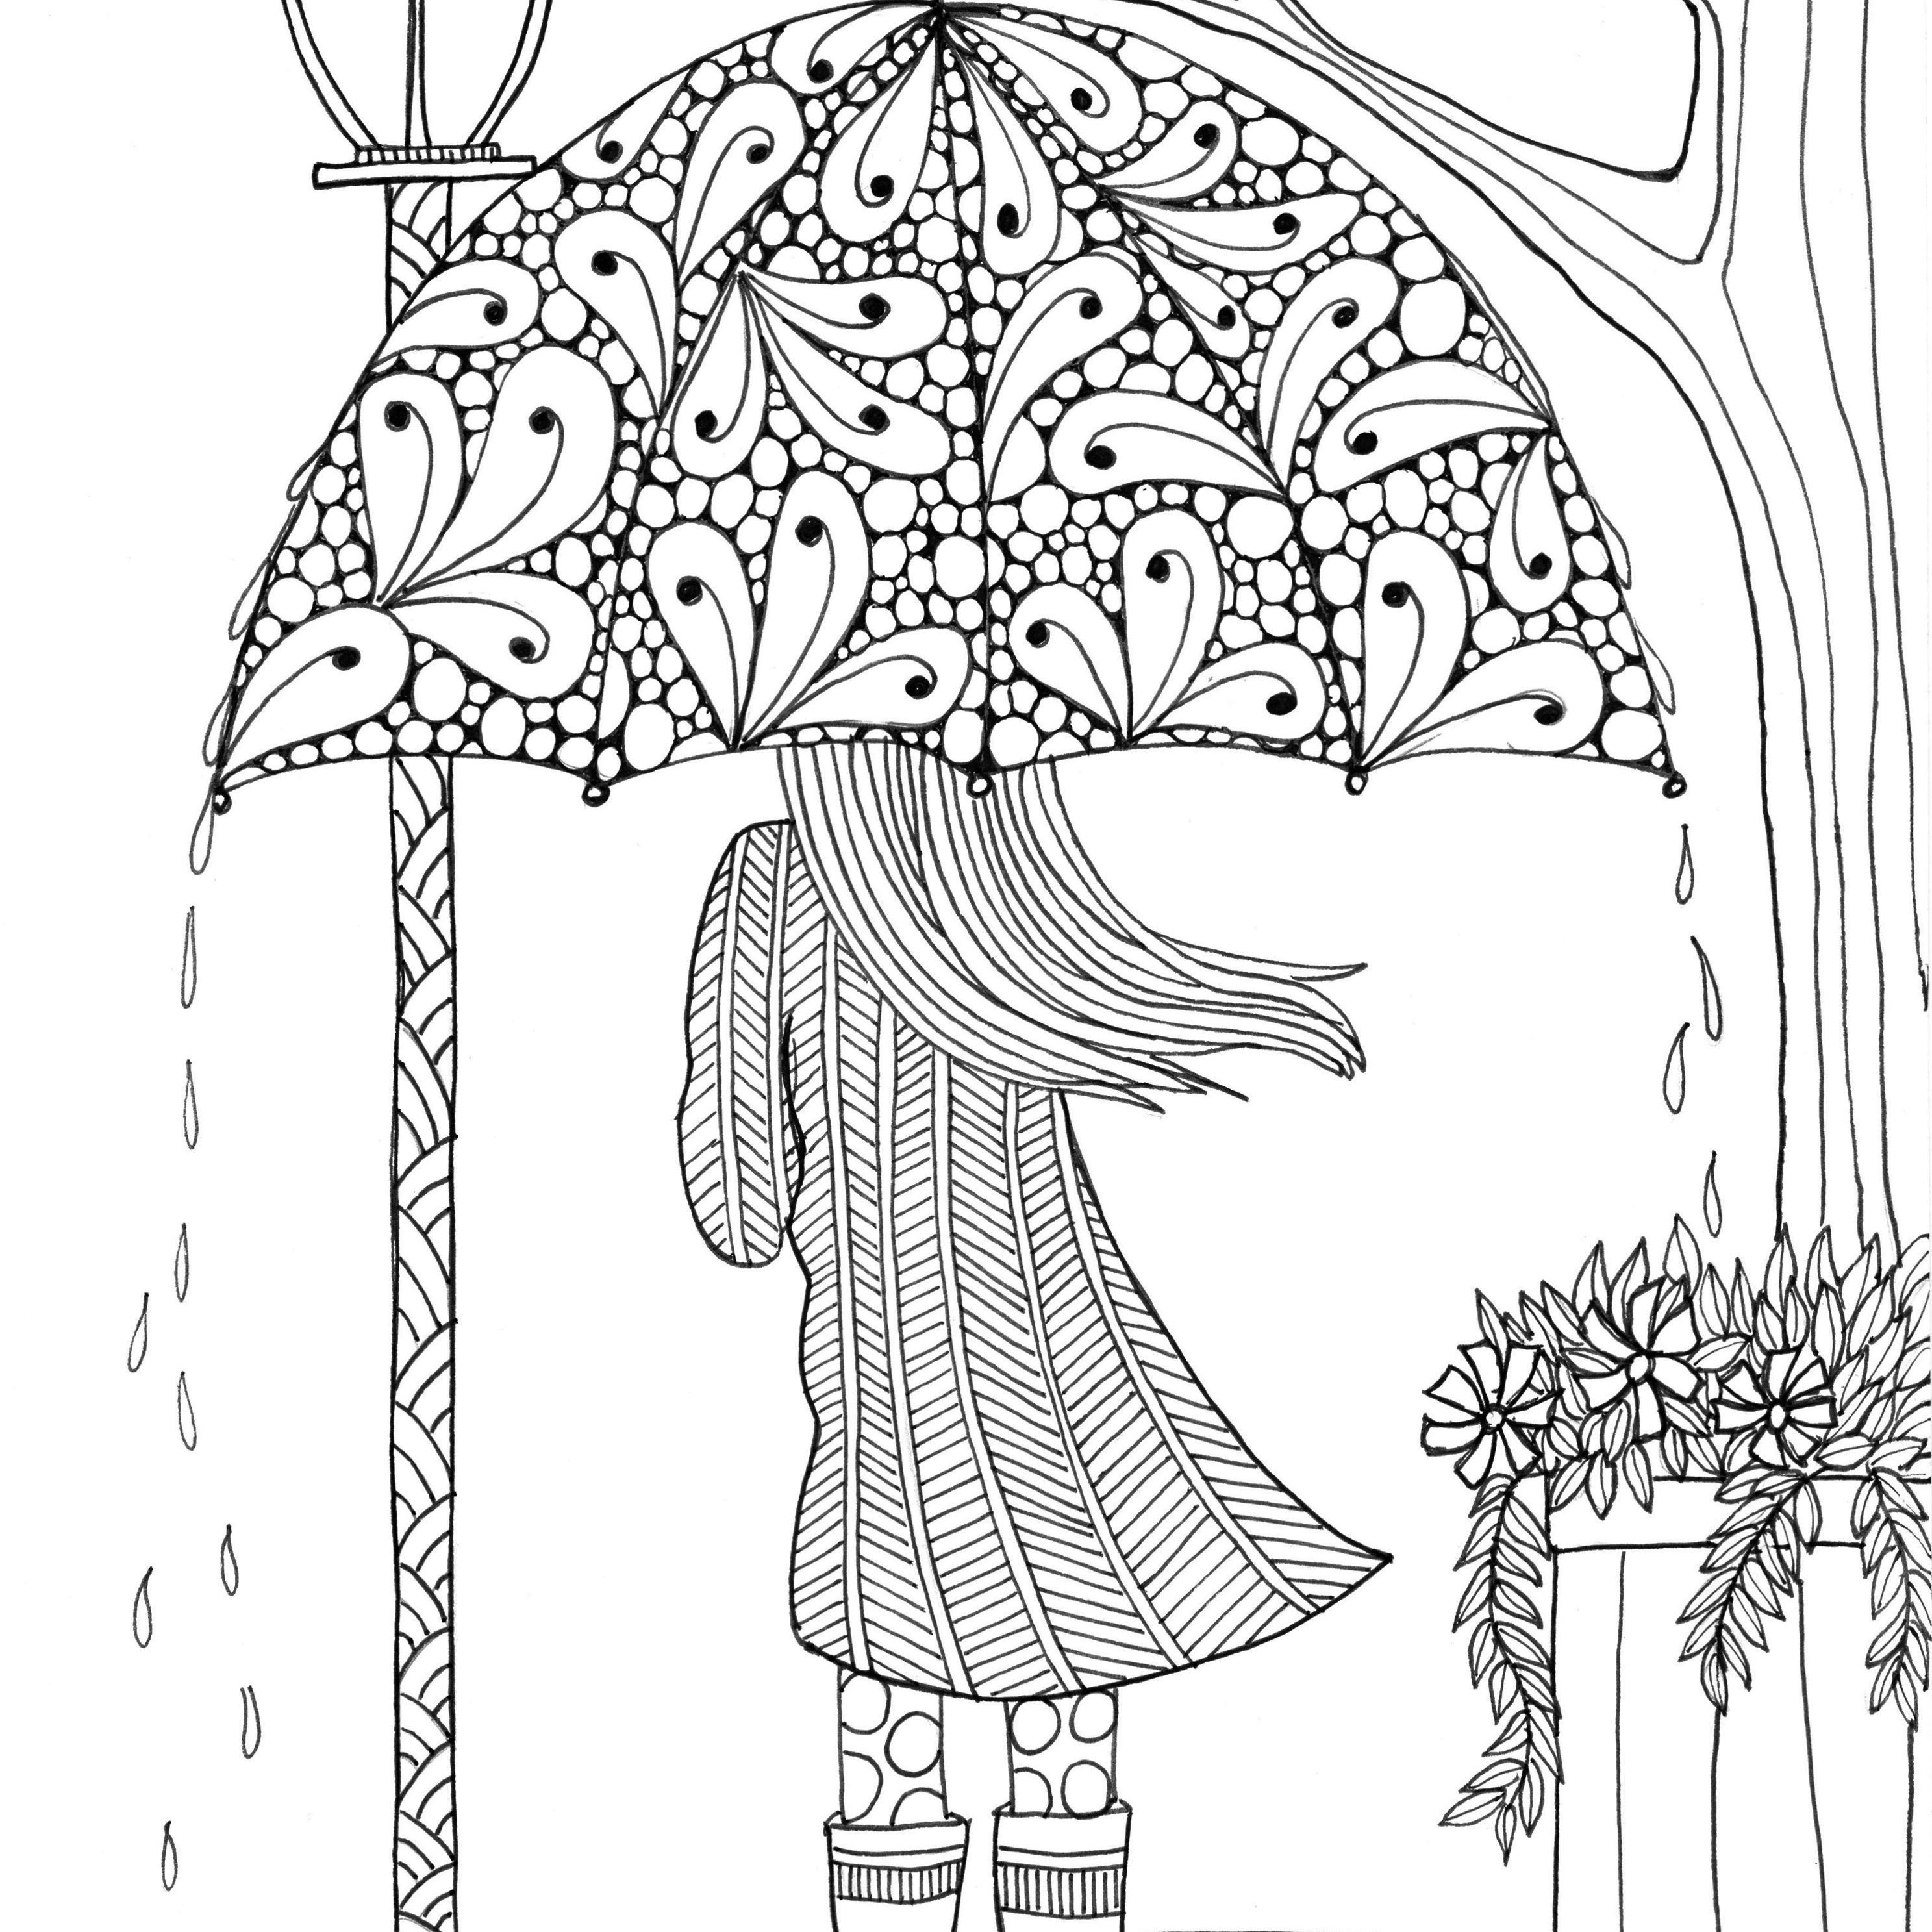 Free, Printable Coloring Pages For Adults - Free Printable Coloring Pages For Adults